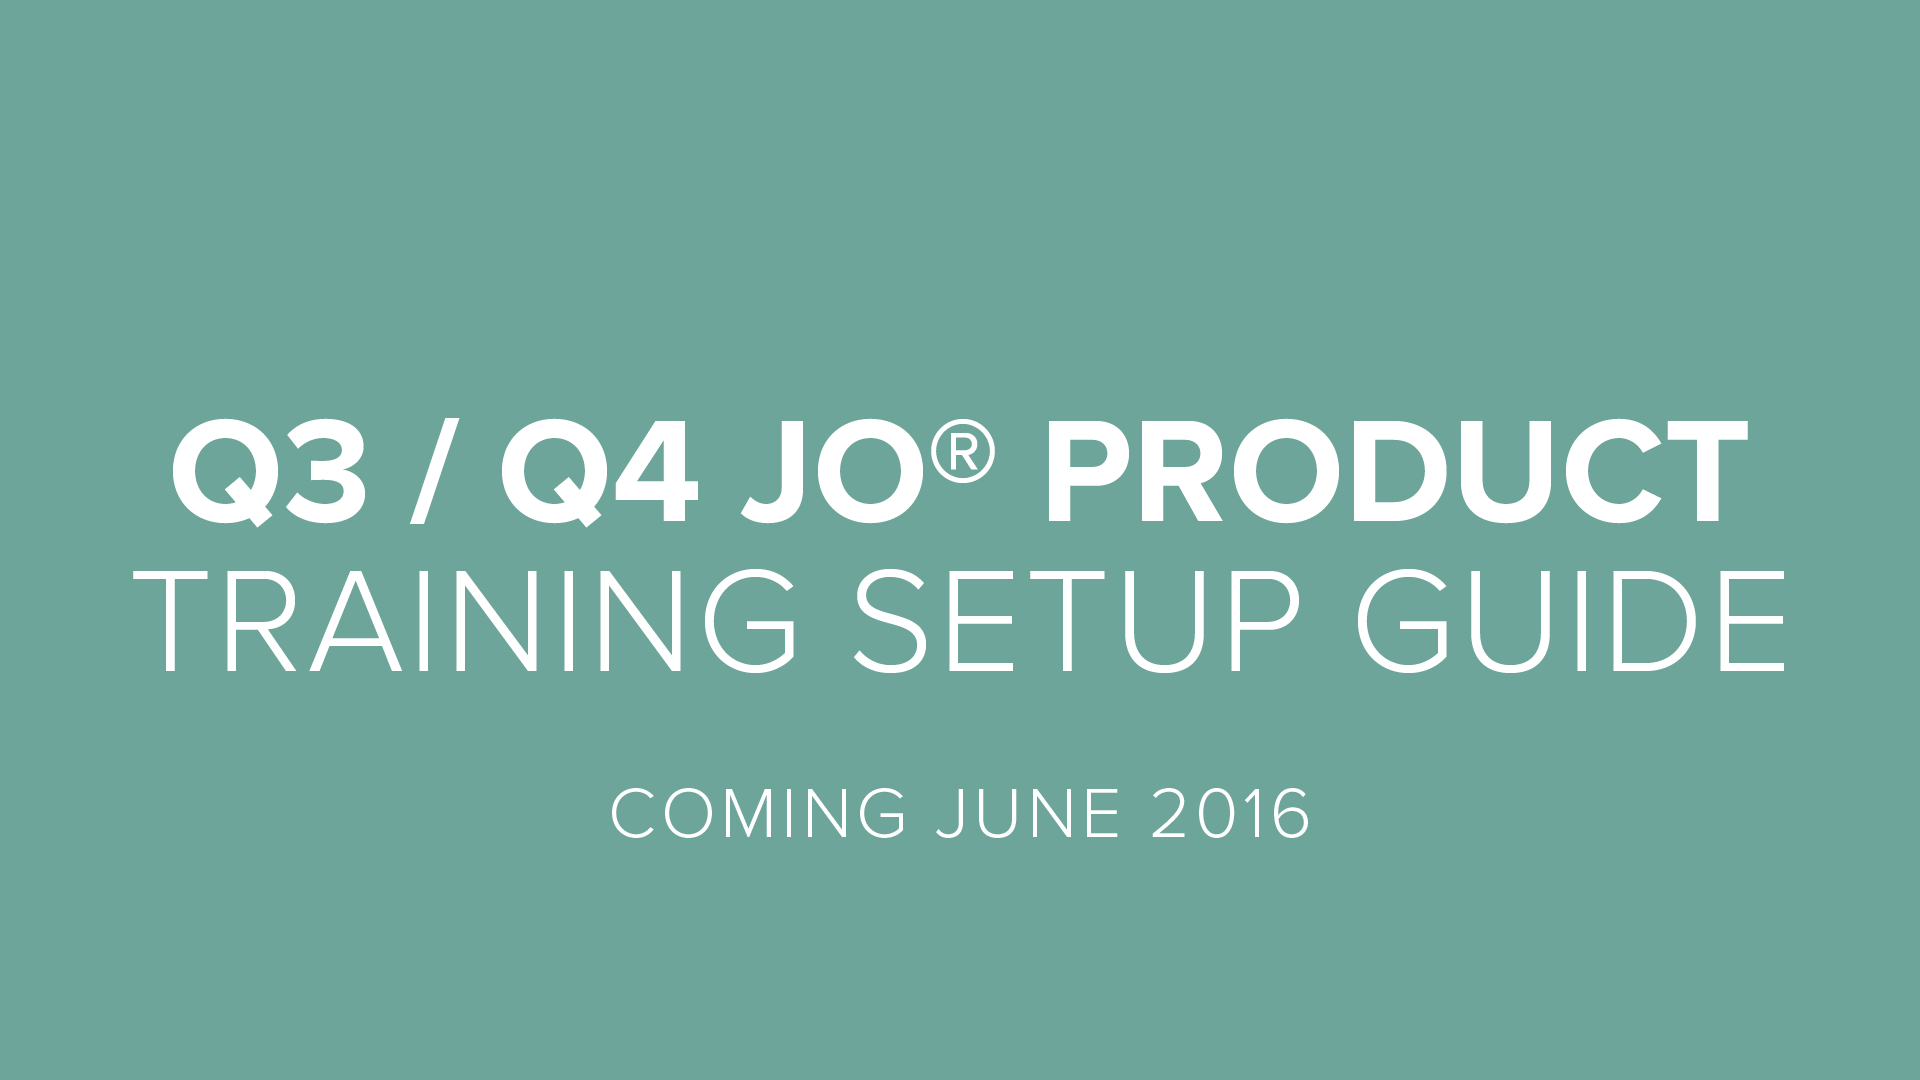 JO Category Icons (with color)_Q3 Q4 JO Product Training Setup Guide.png